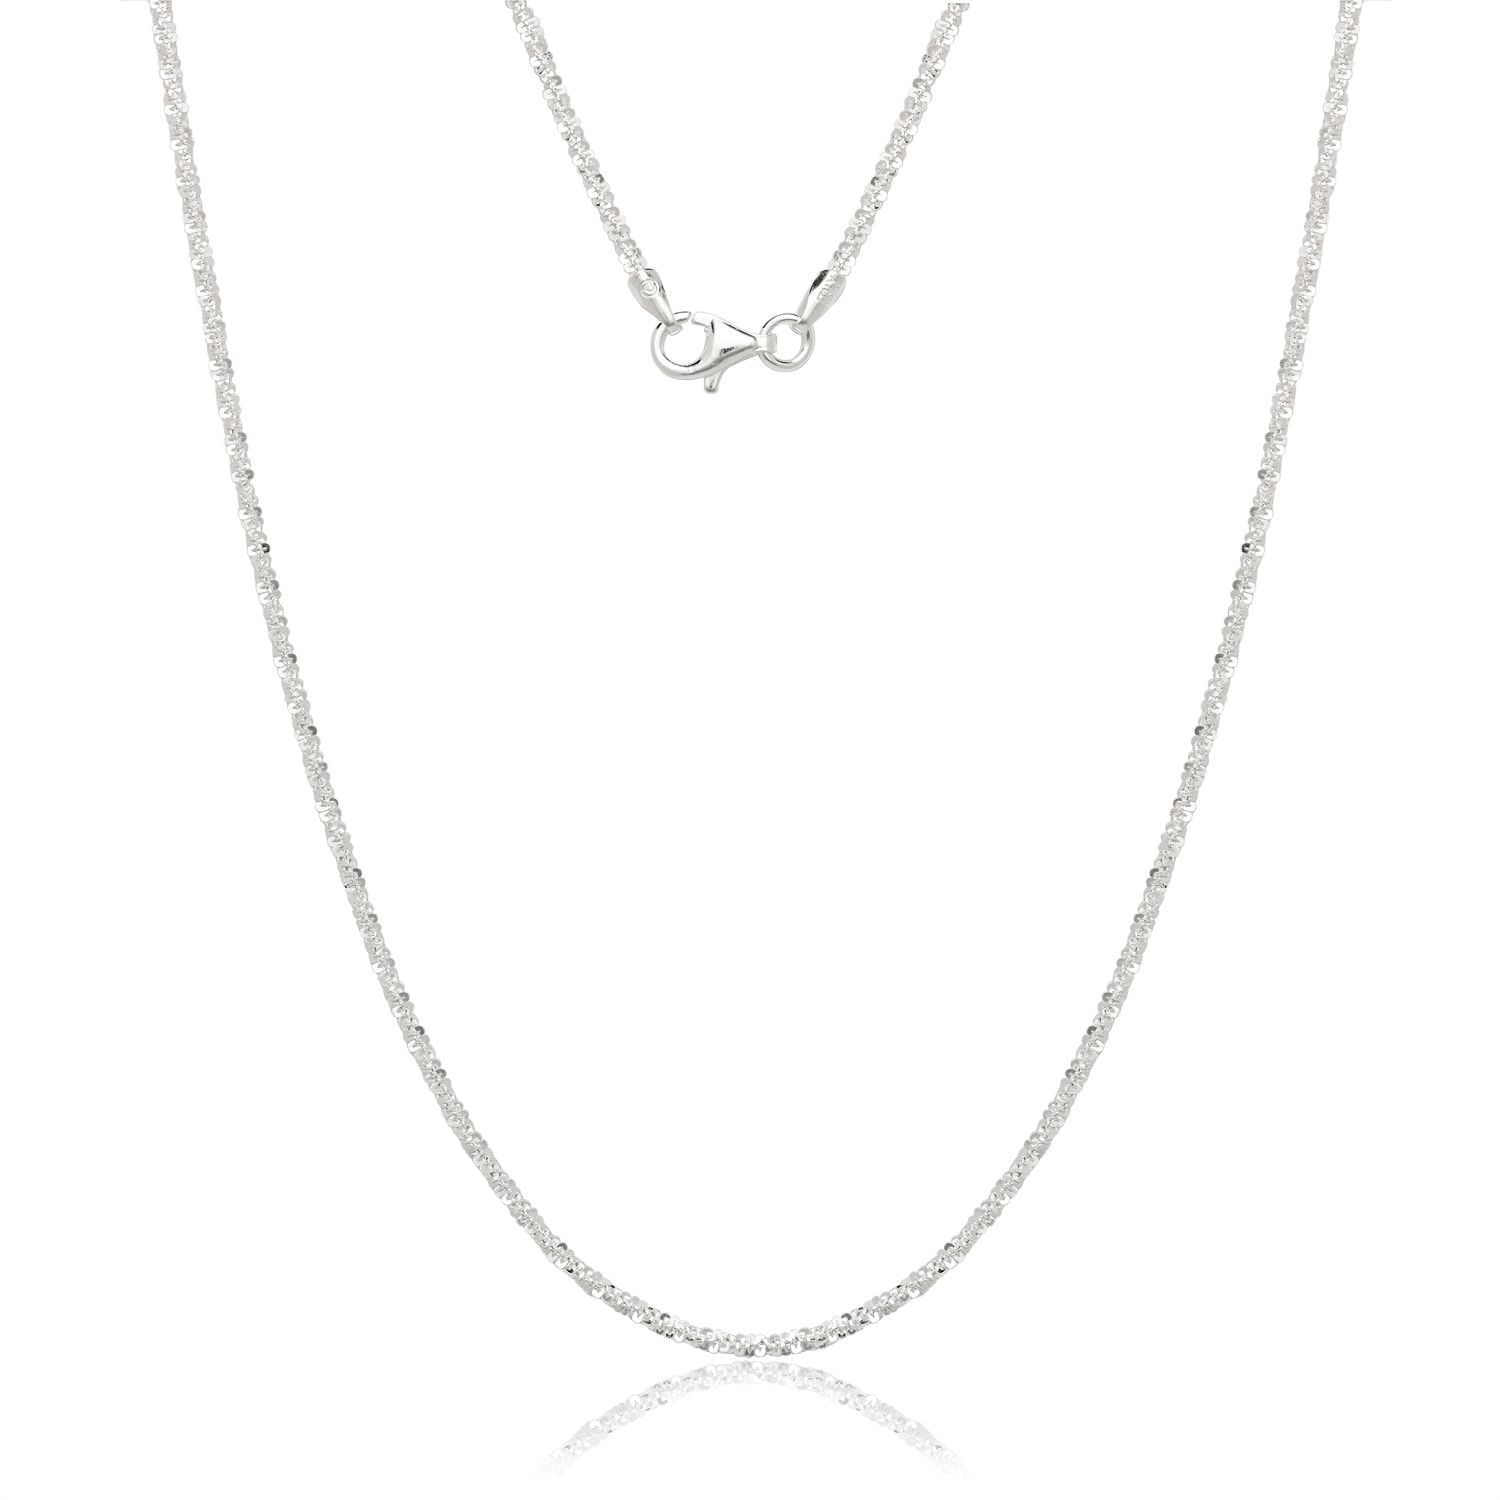 Italian Sterling Silver Margarita Chain Necklace (18-inch...